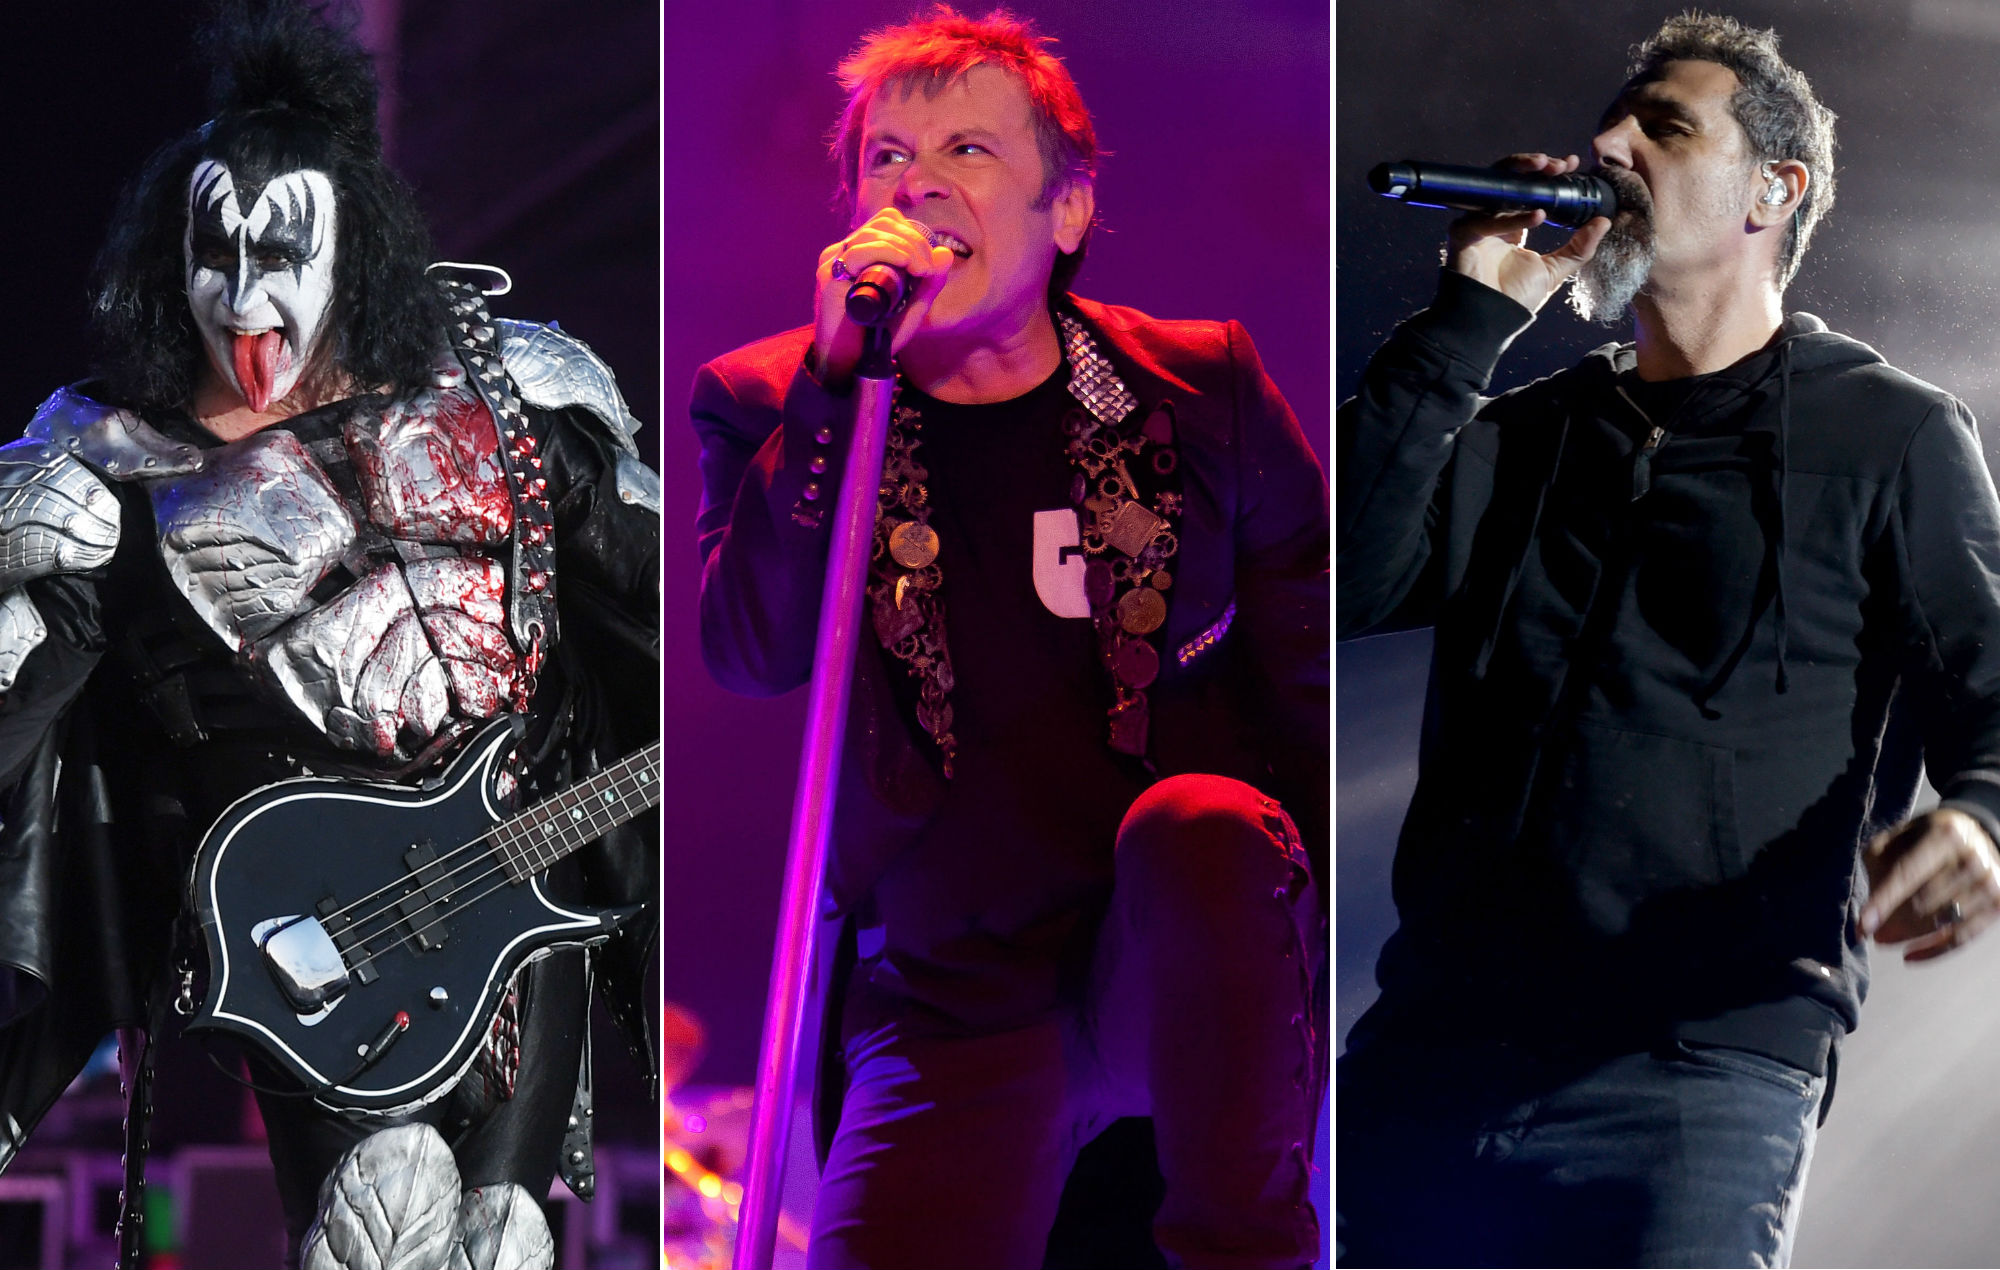 KISS, Iron Maiden and System Of A Down to headline Download Festival 2020